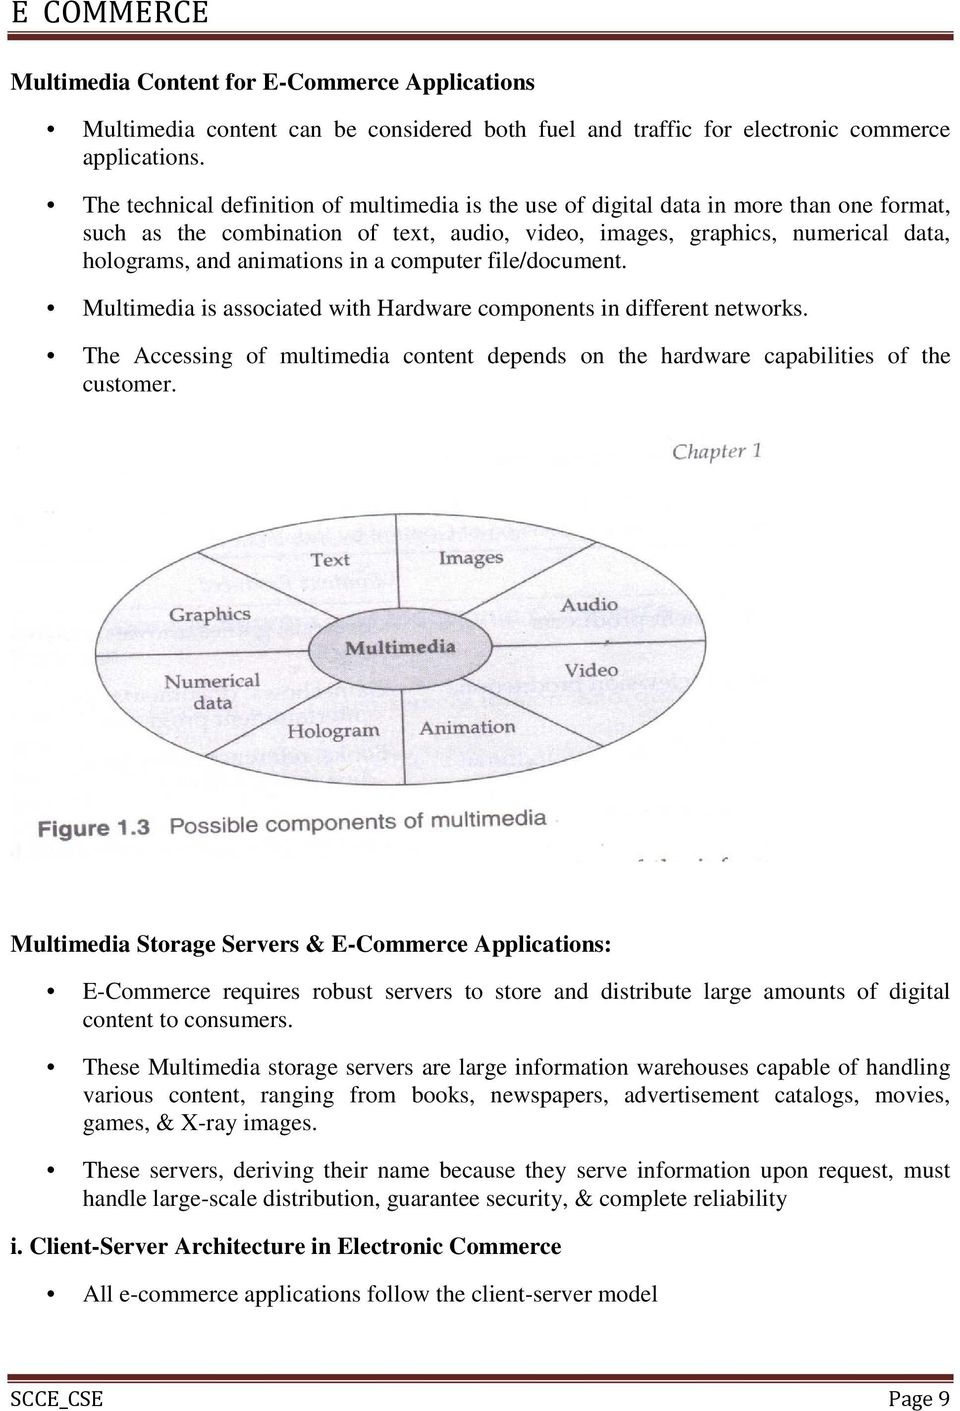 in a computer file/document. Multimedia is associated with Hardware components in different networks. The Accessing of multimedia content depends on the hardware capabilities of the customer.